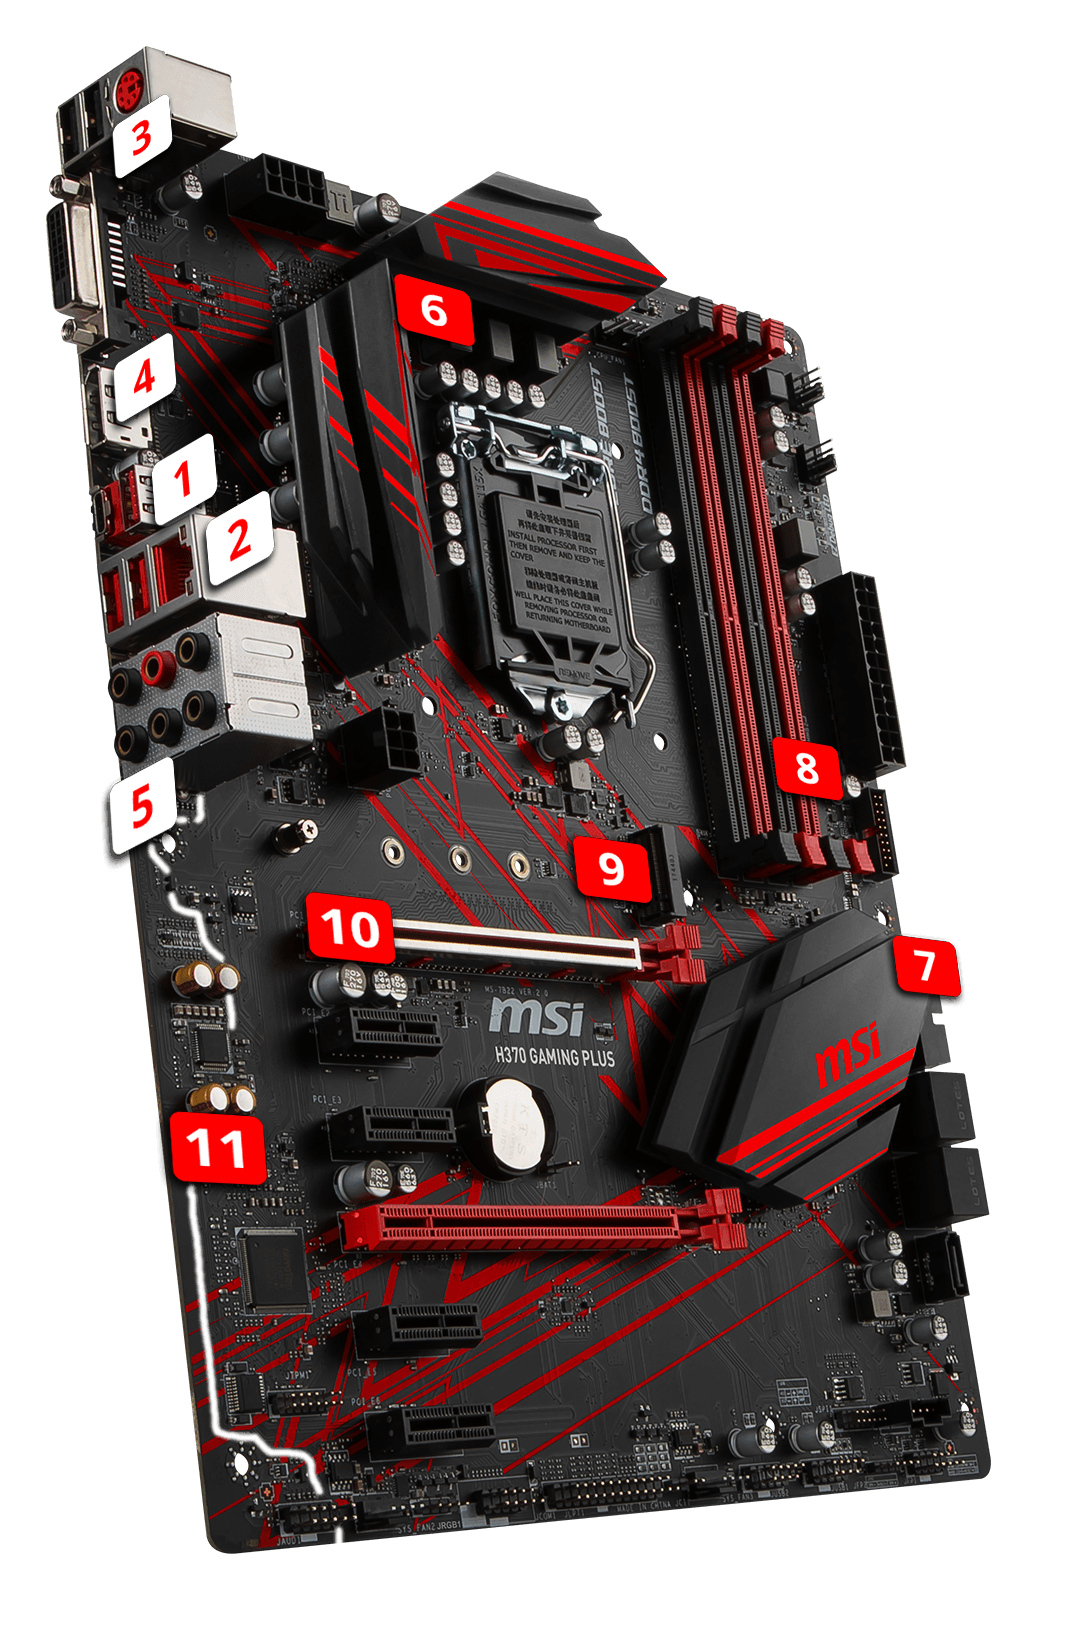 H370 GAMING PLUS | Motherboard - The world leader in motherboard